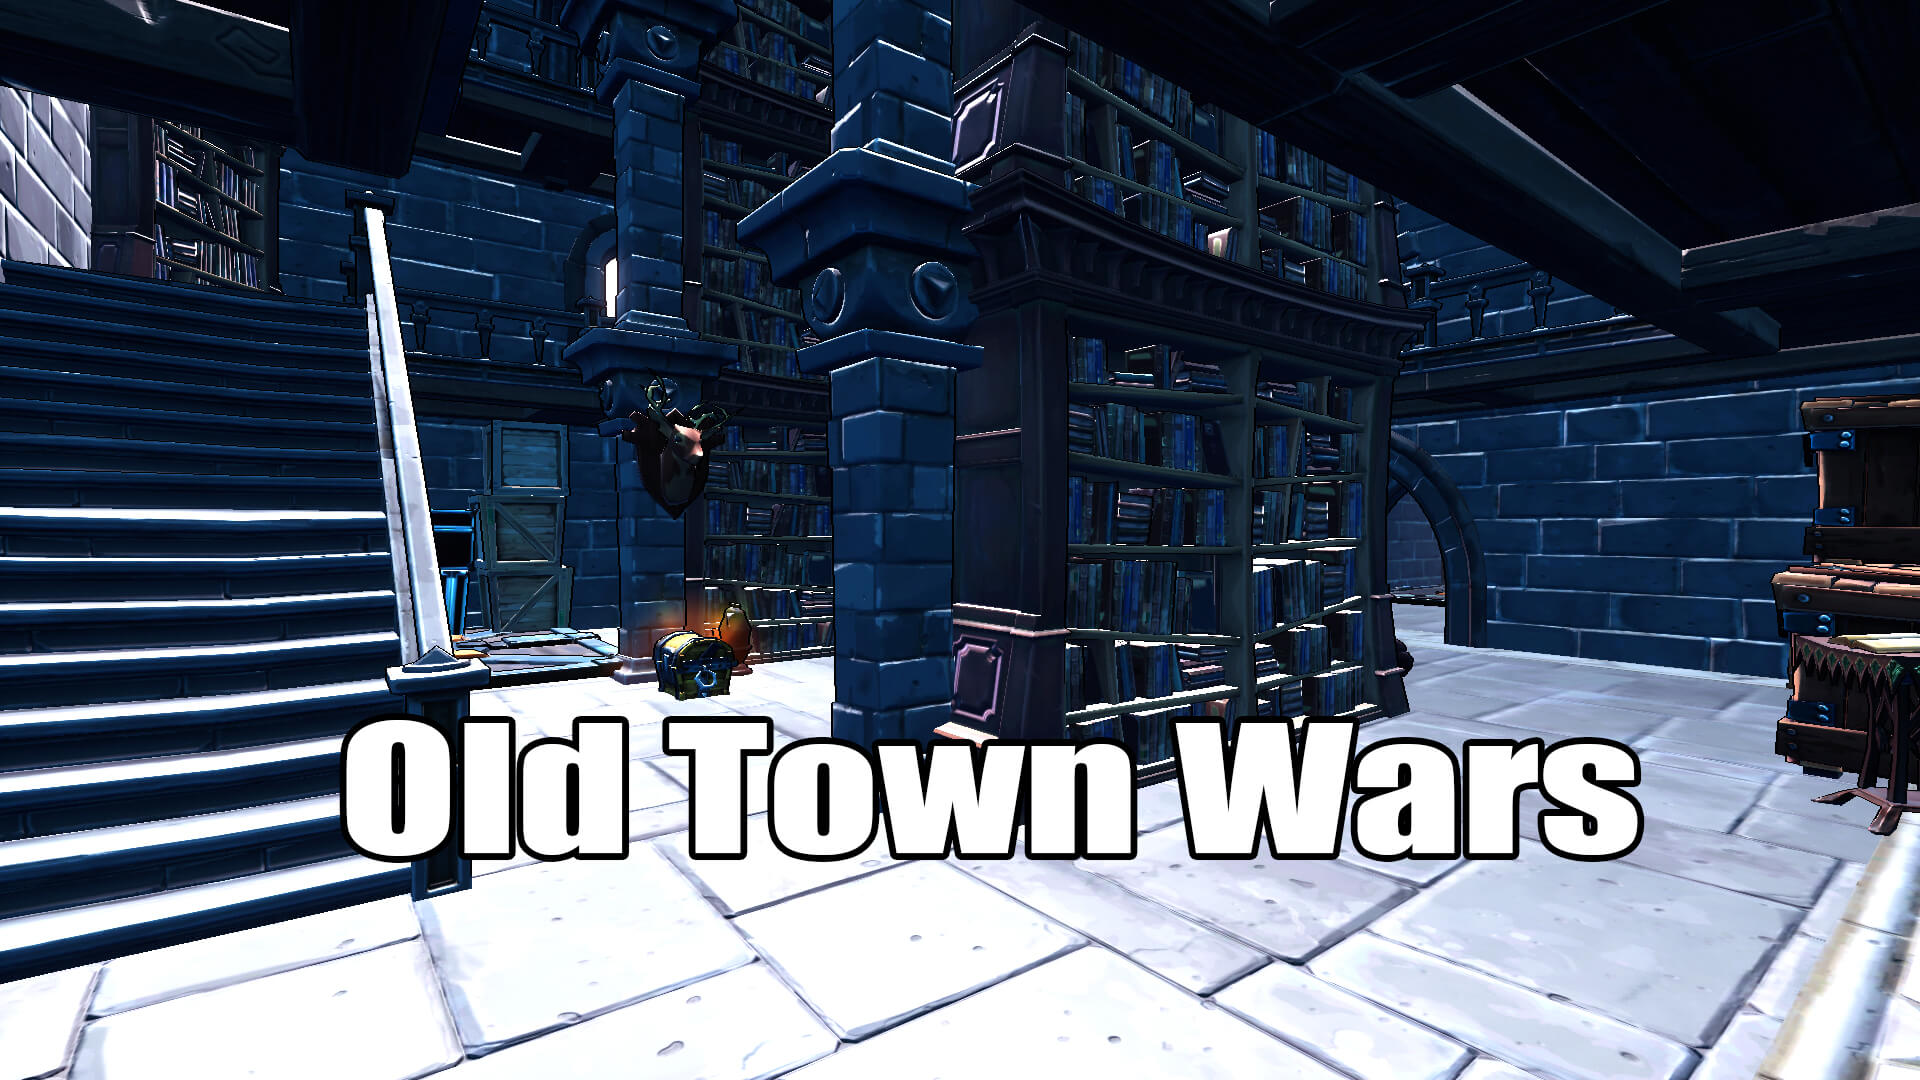 OLD TOWN WARS V1.0 | SUPPORT CODE : 9X9X